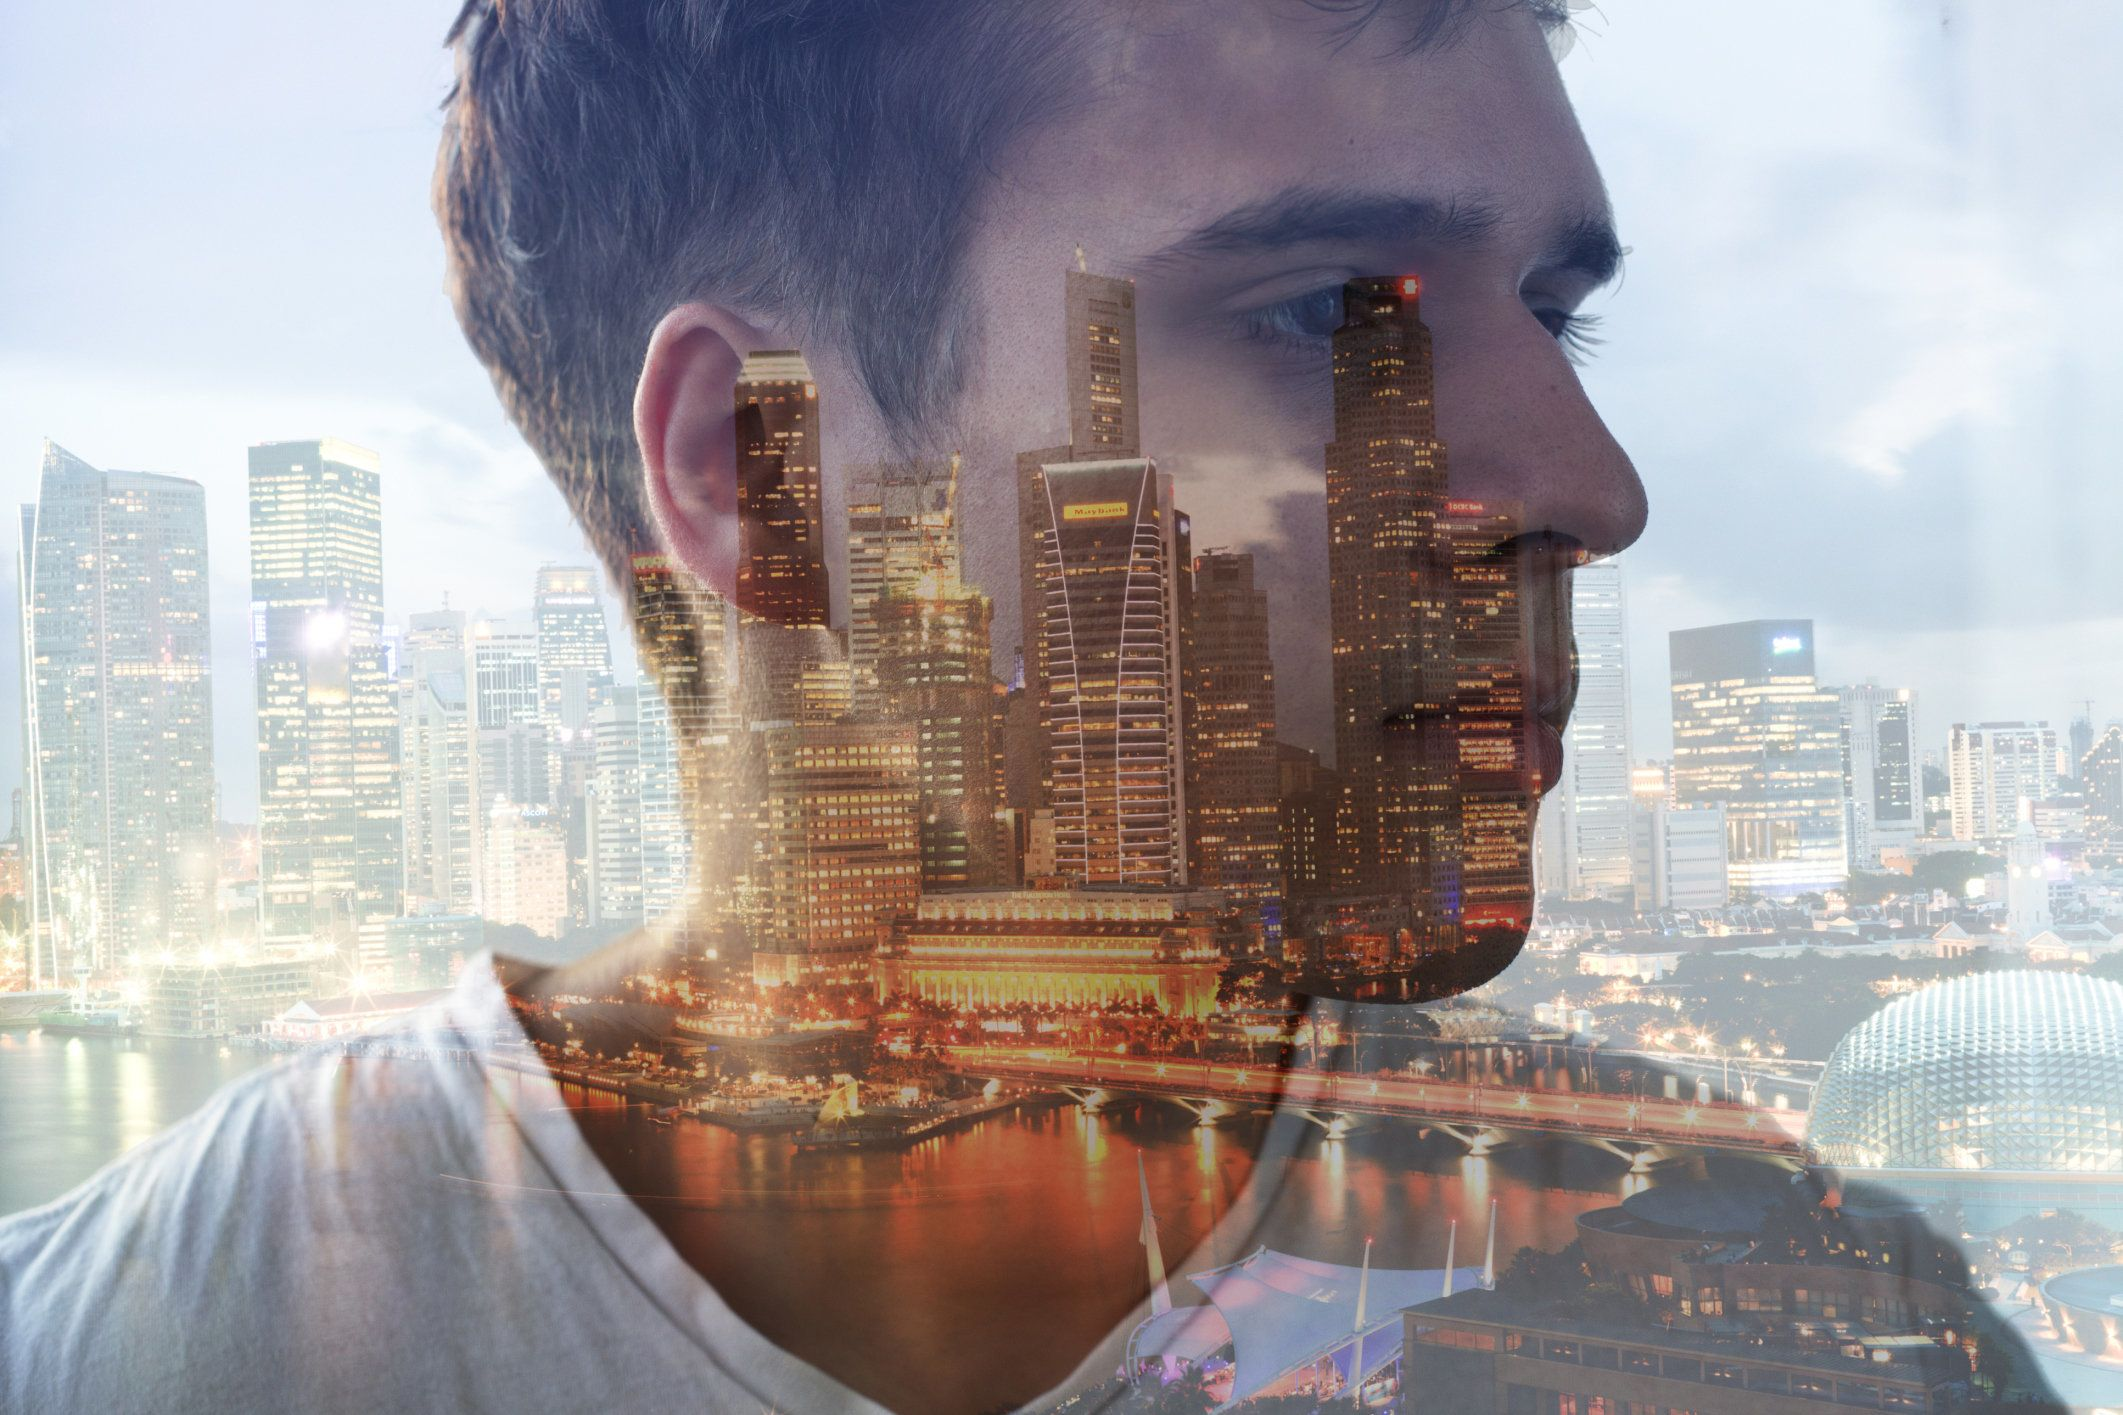 composite image of man's head and night time cityscape